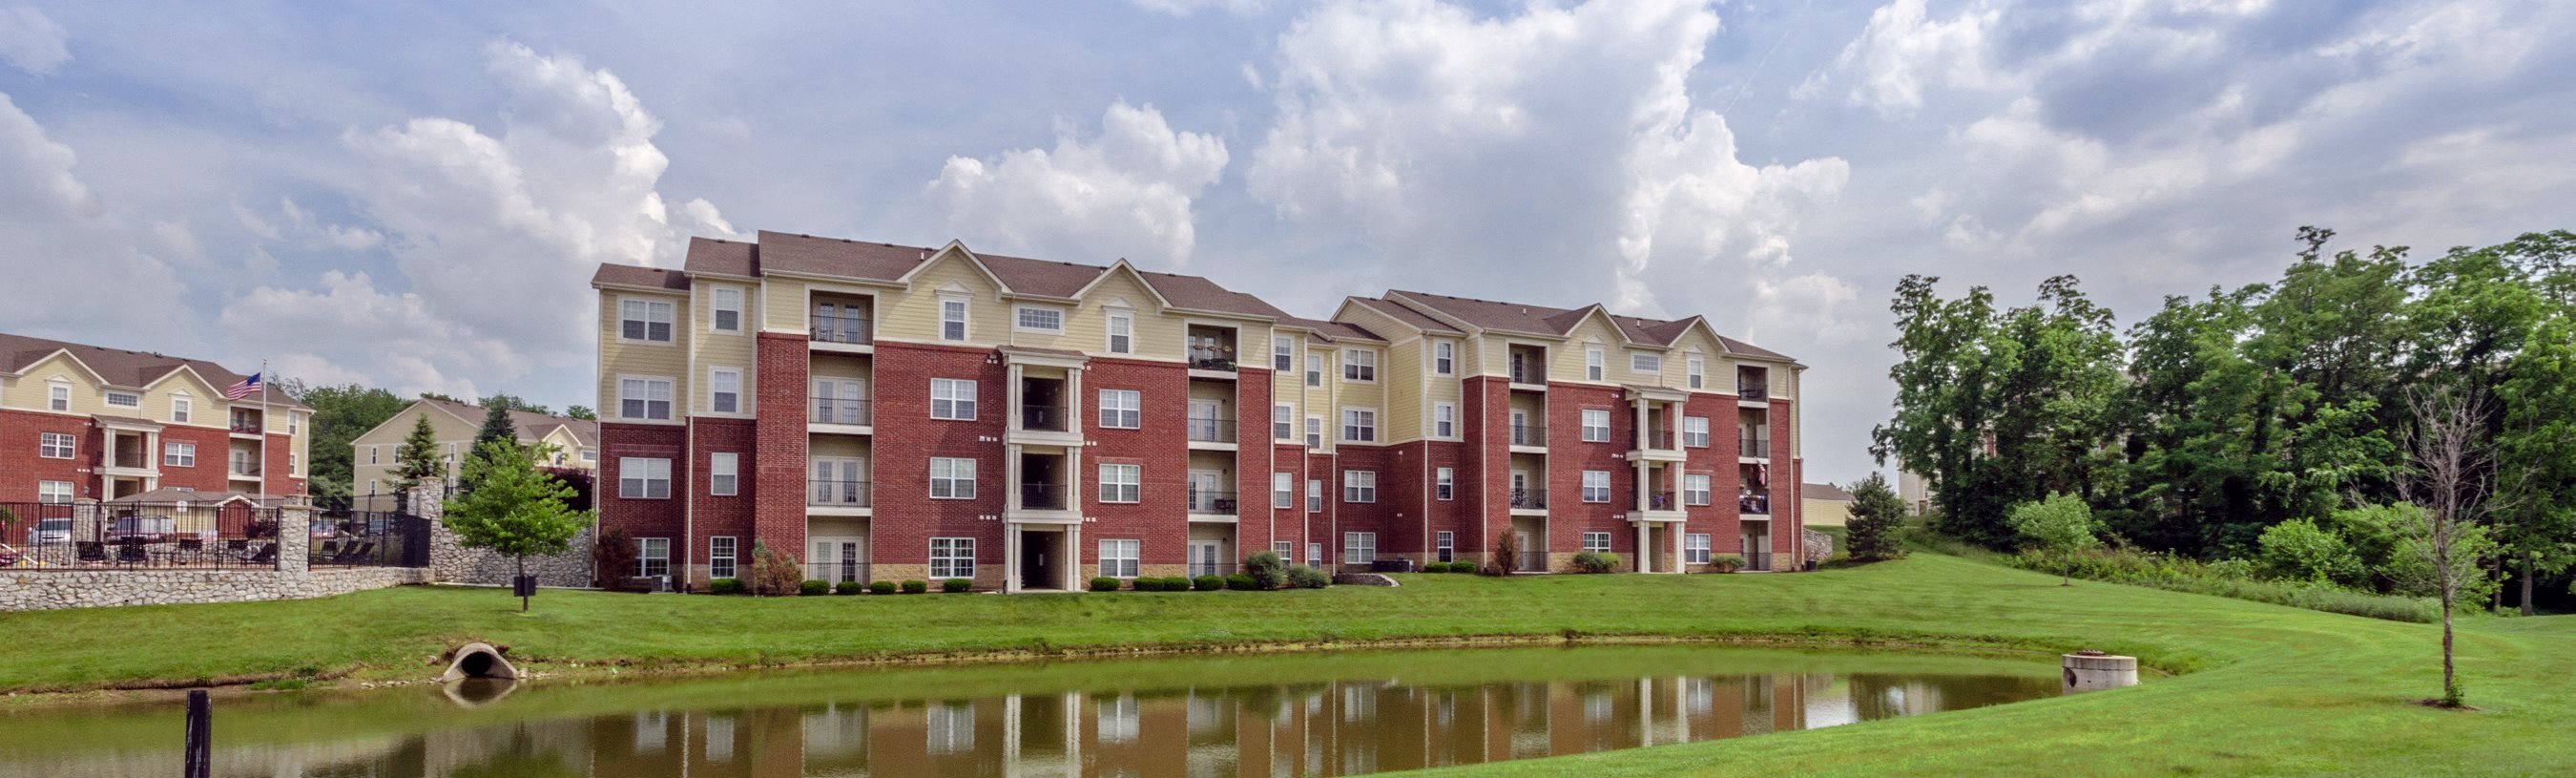 Devonshire Apartments - Greenwood Indiana